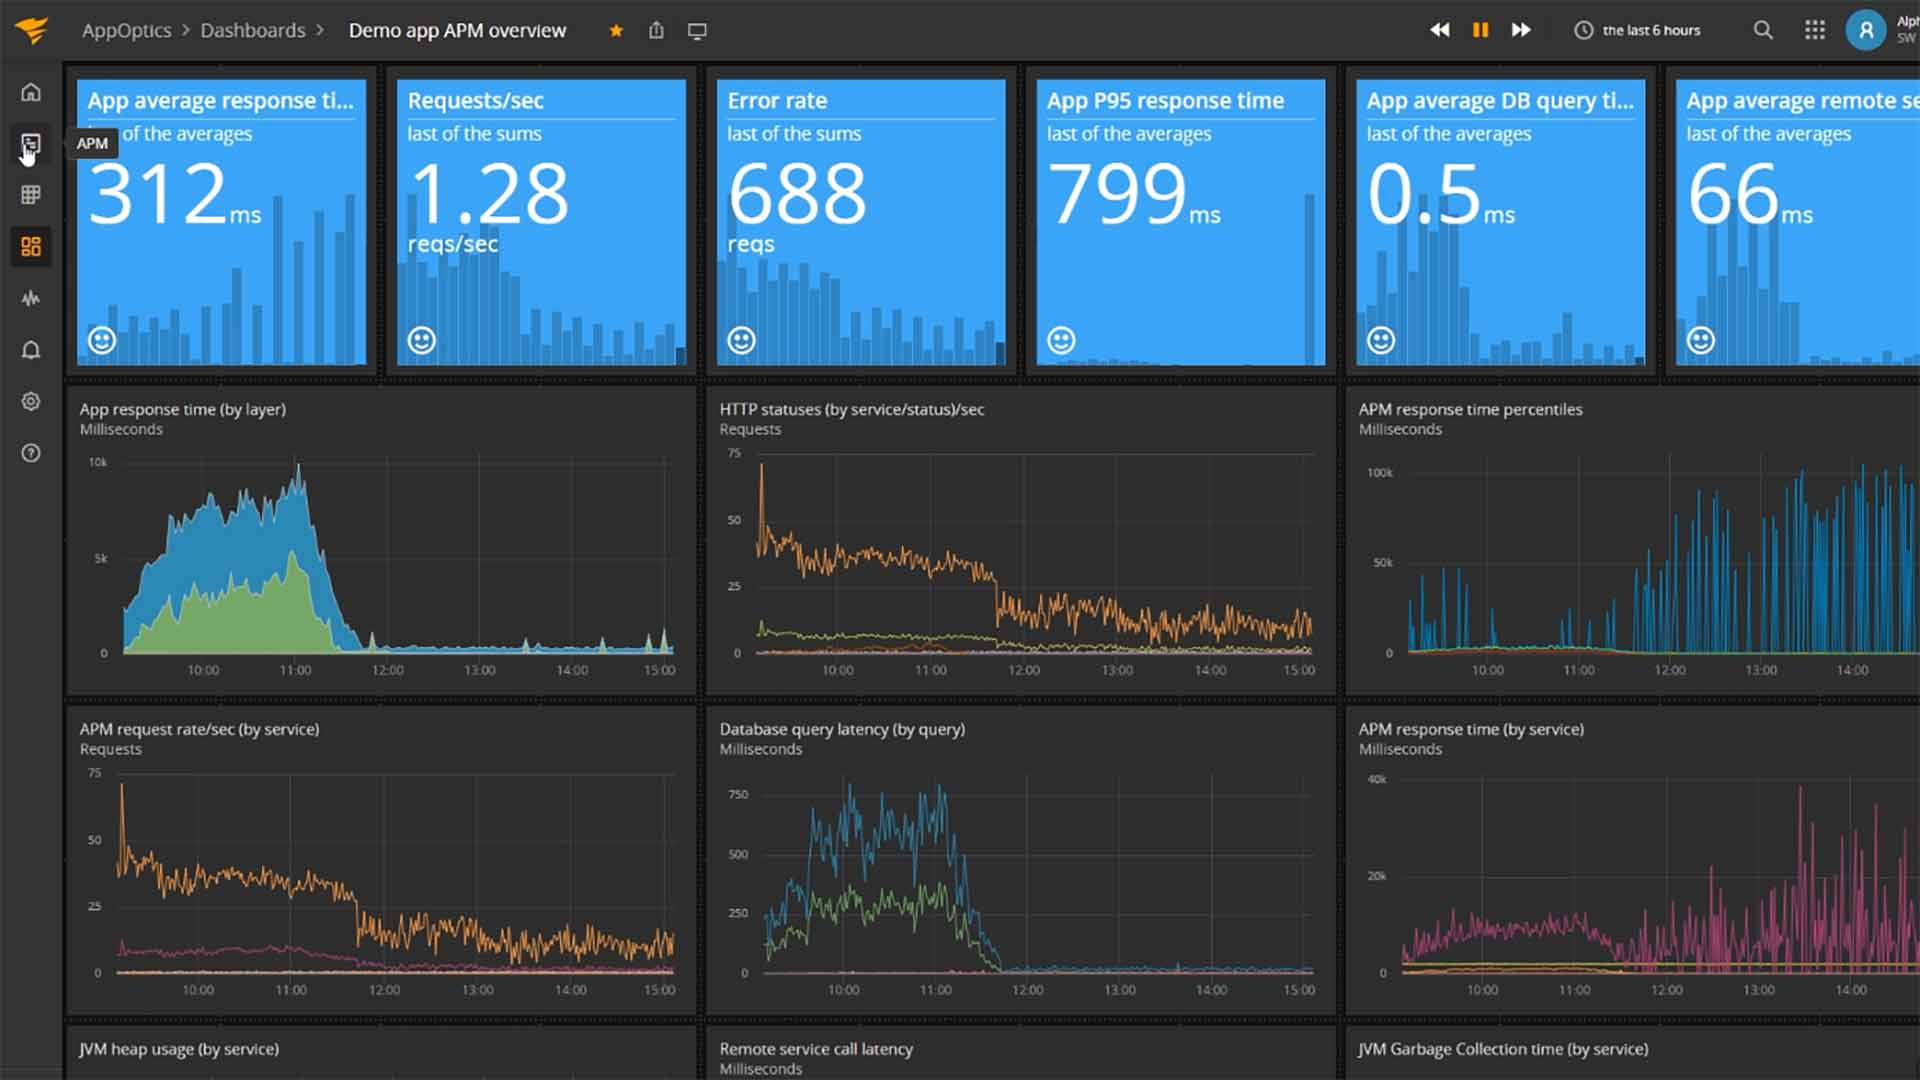 Application Performance Monitoring Dasboard Screenshot